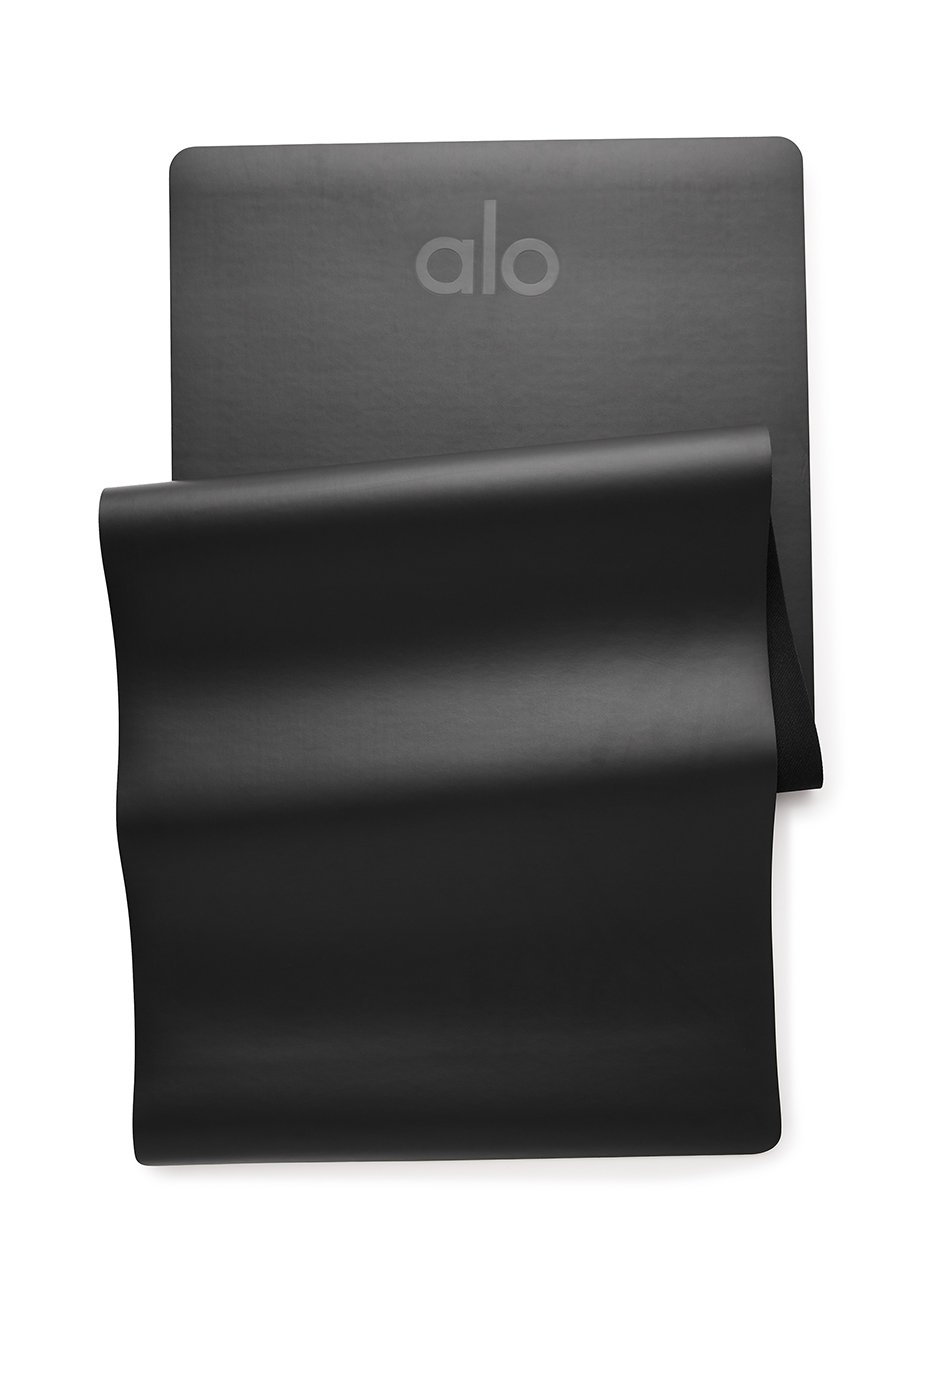 alo yoga mat, mother's day gift